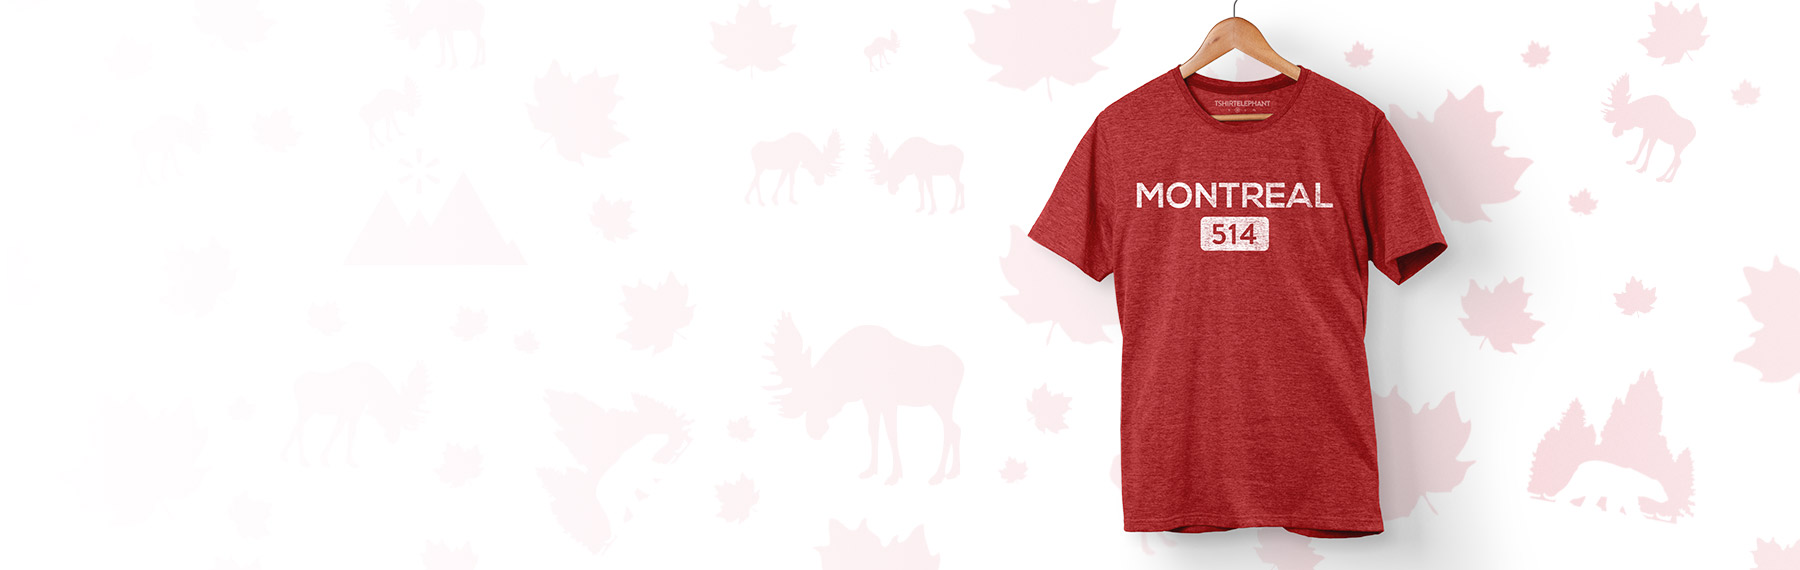 Design your own t shirt montreal - Custom T Shirts Montreal